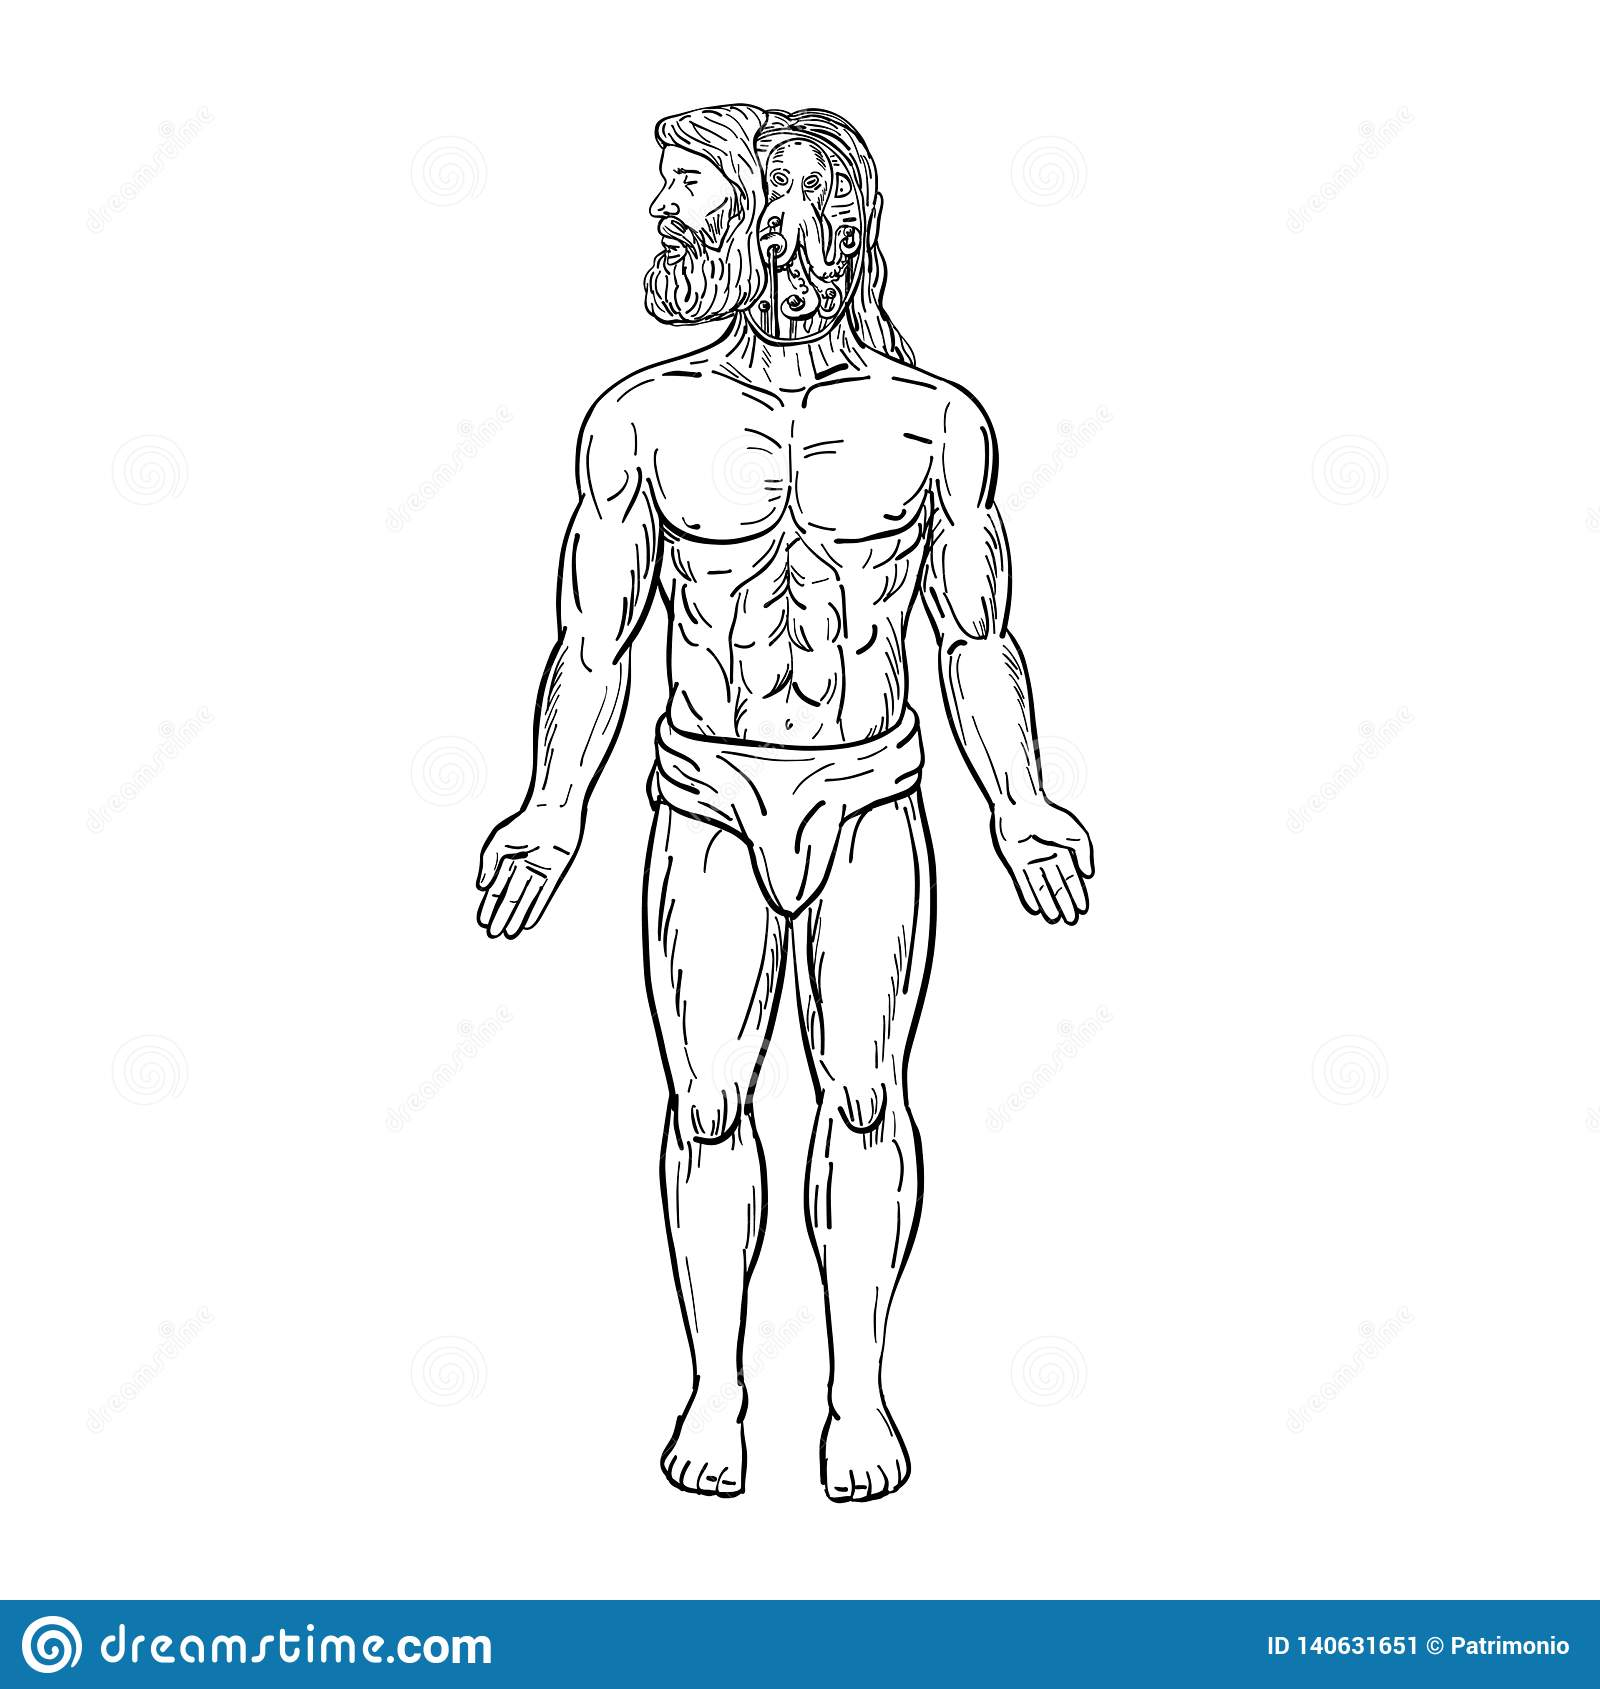 Drawing sketch style illustration of a male bearded human being with an alien like octopus inside his head manipulating his body in disguise viewed from